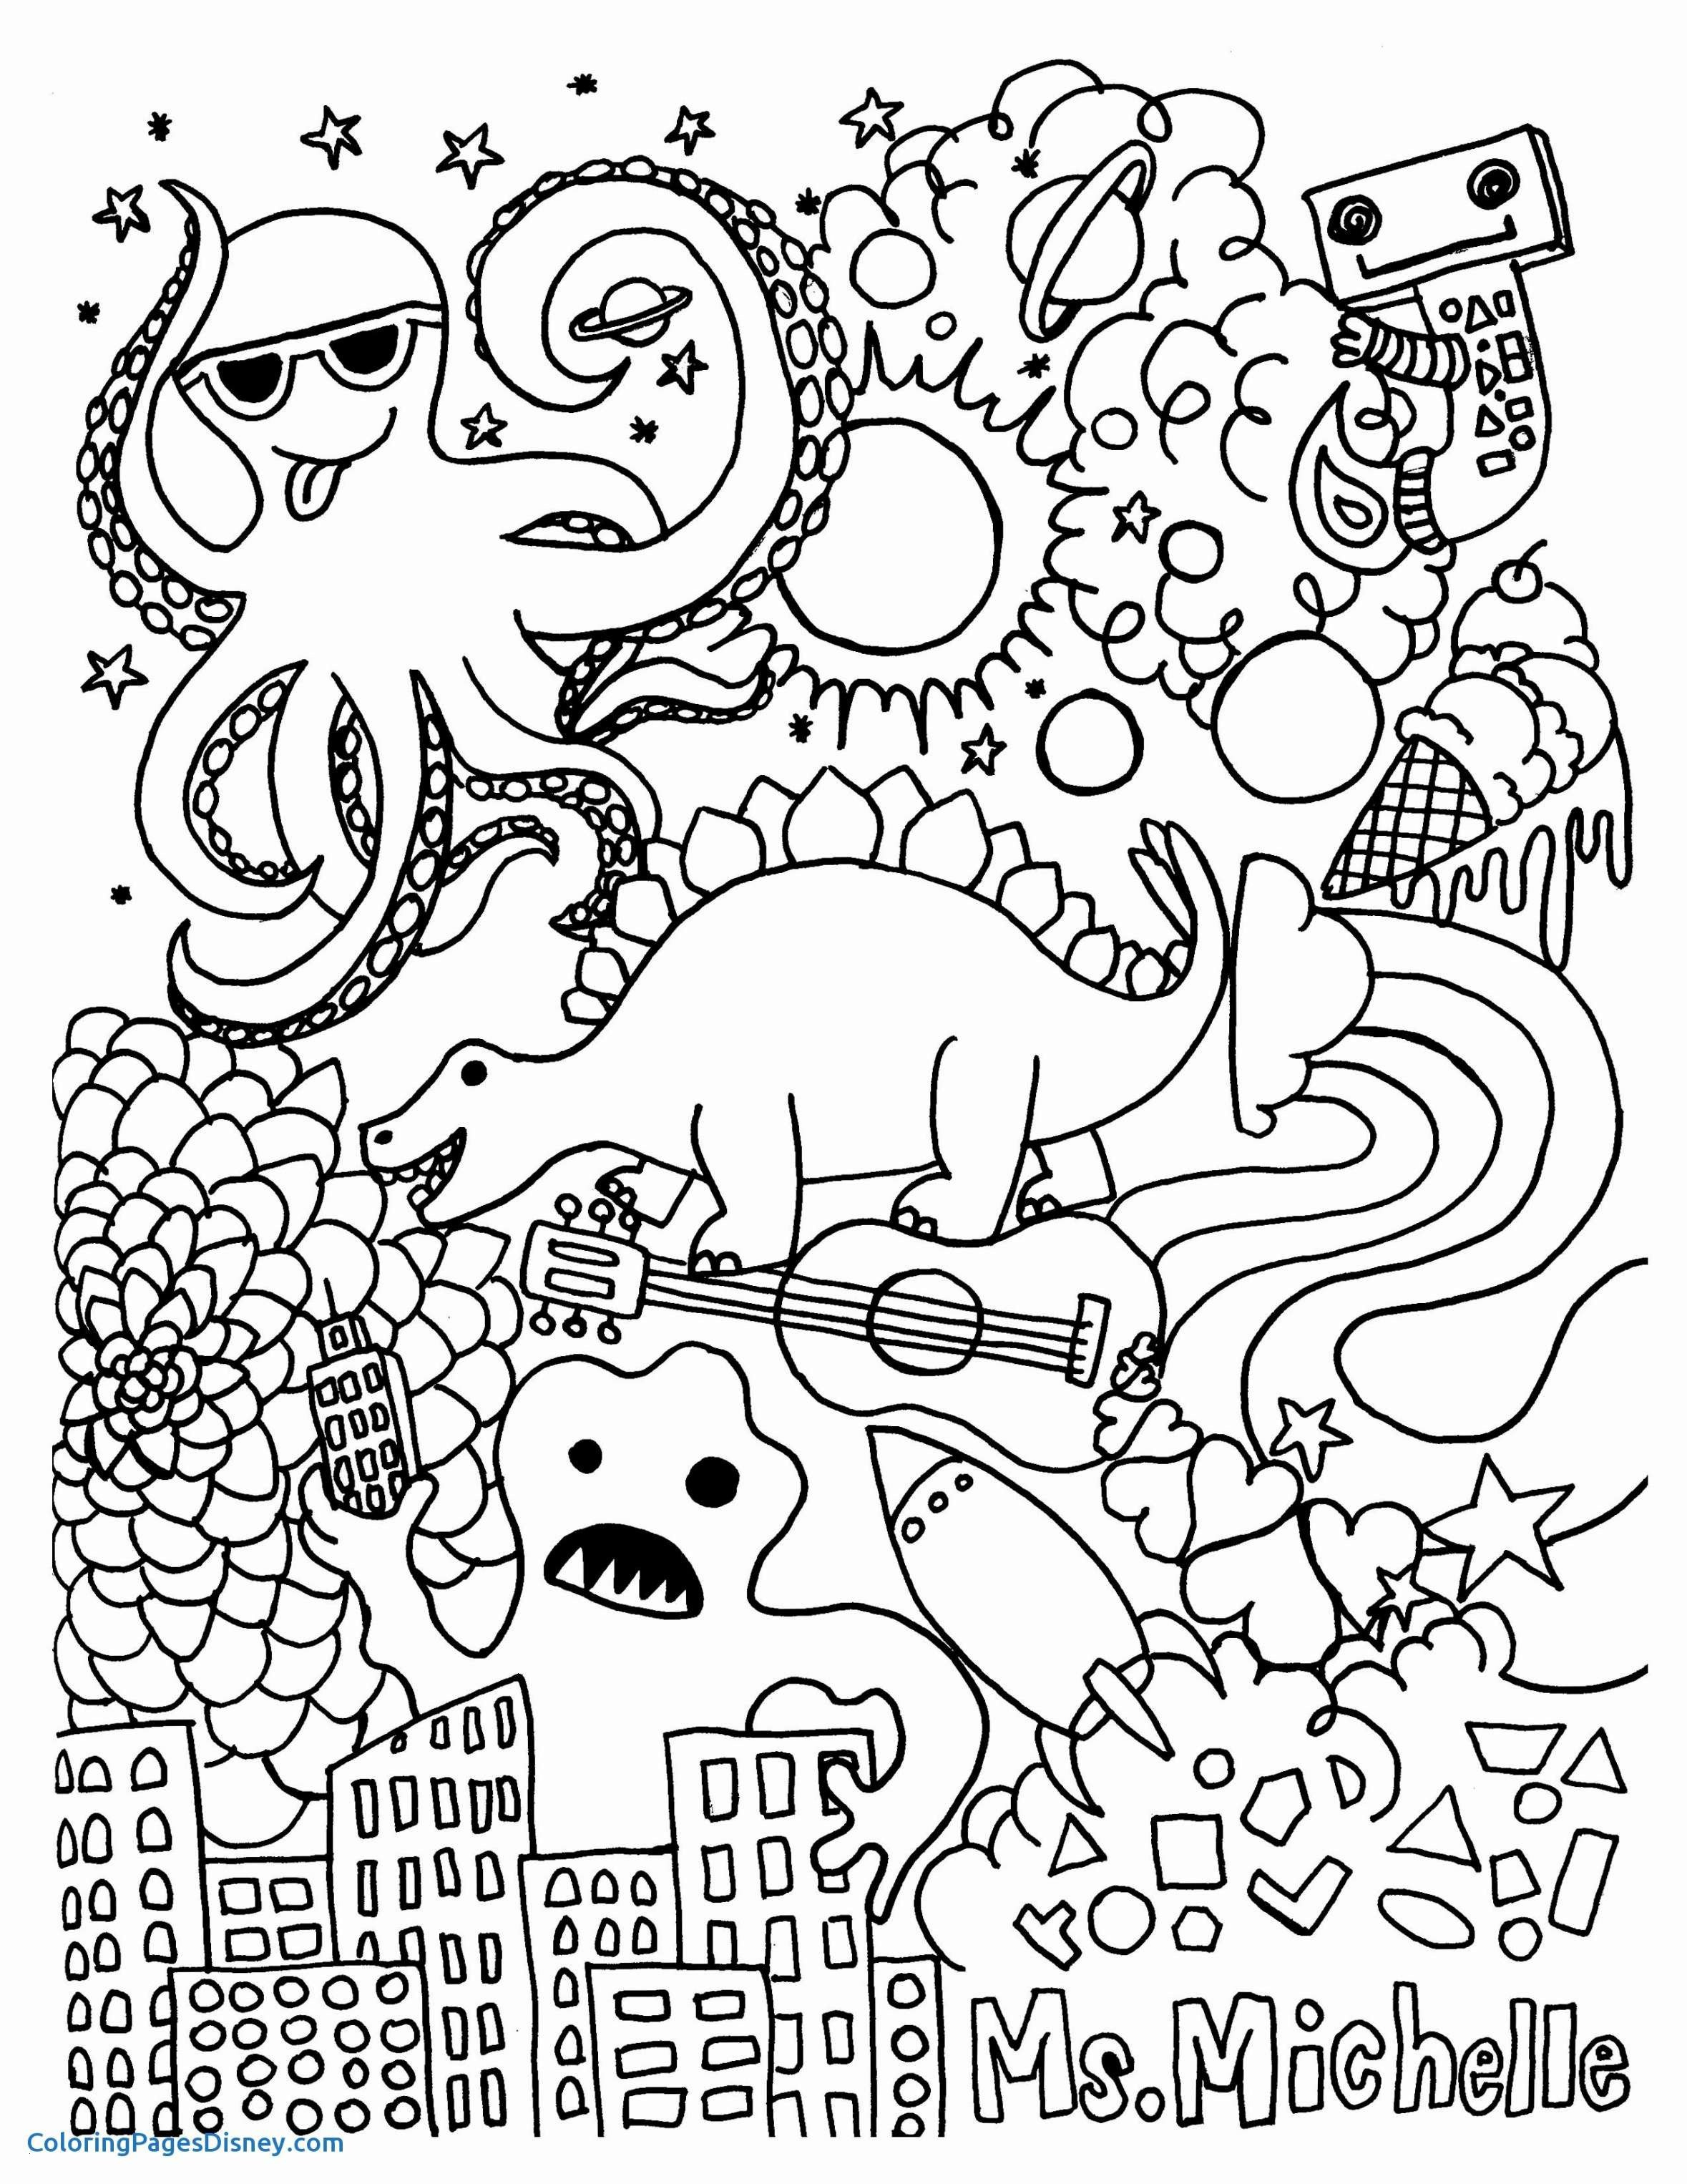 24 Coloring Pages Websites Download Coloring Sheets